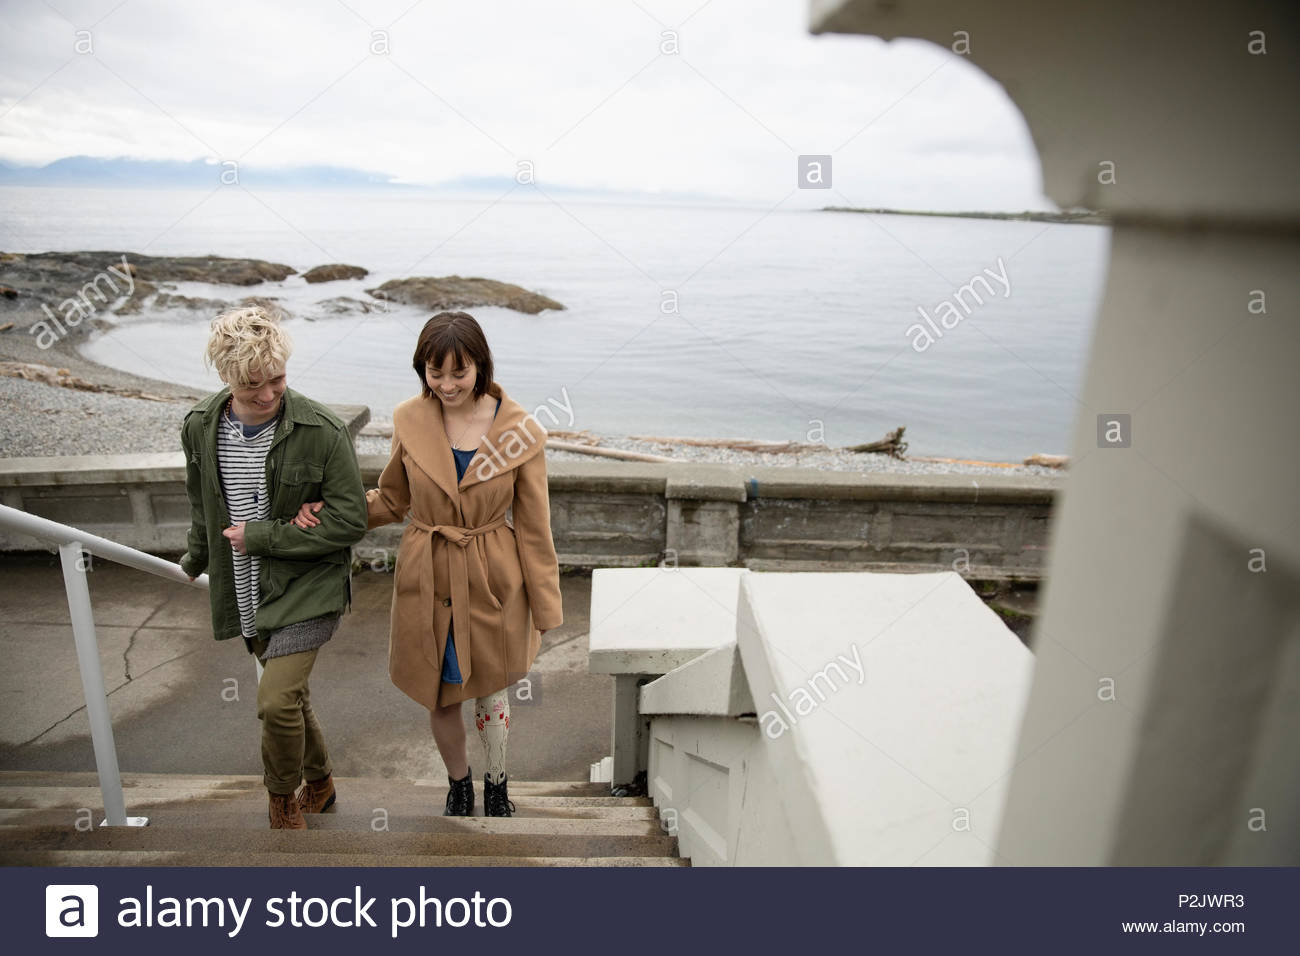 Young woman amputee walking with boyfriend up stairs overlooking beach - Stock Image